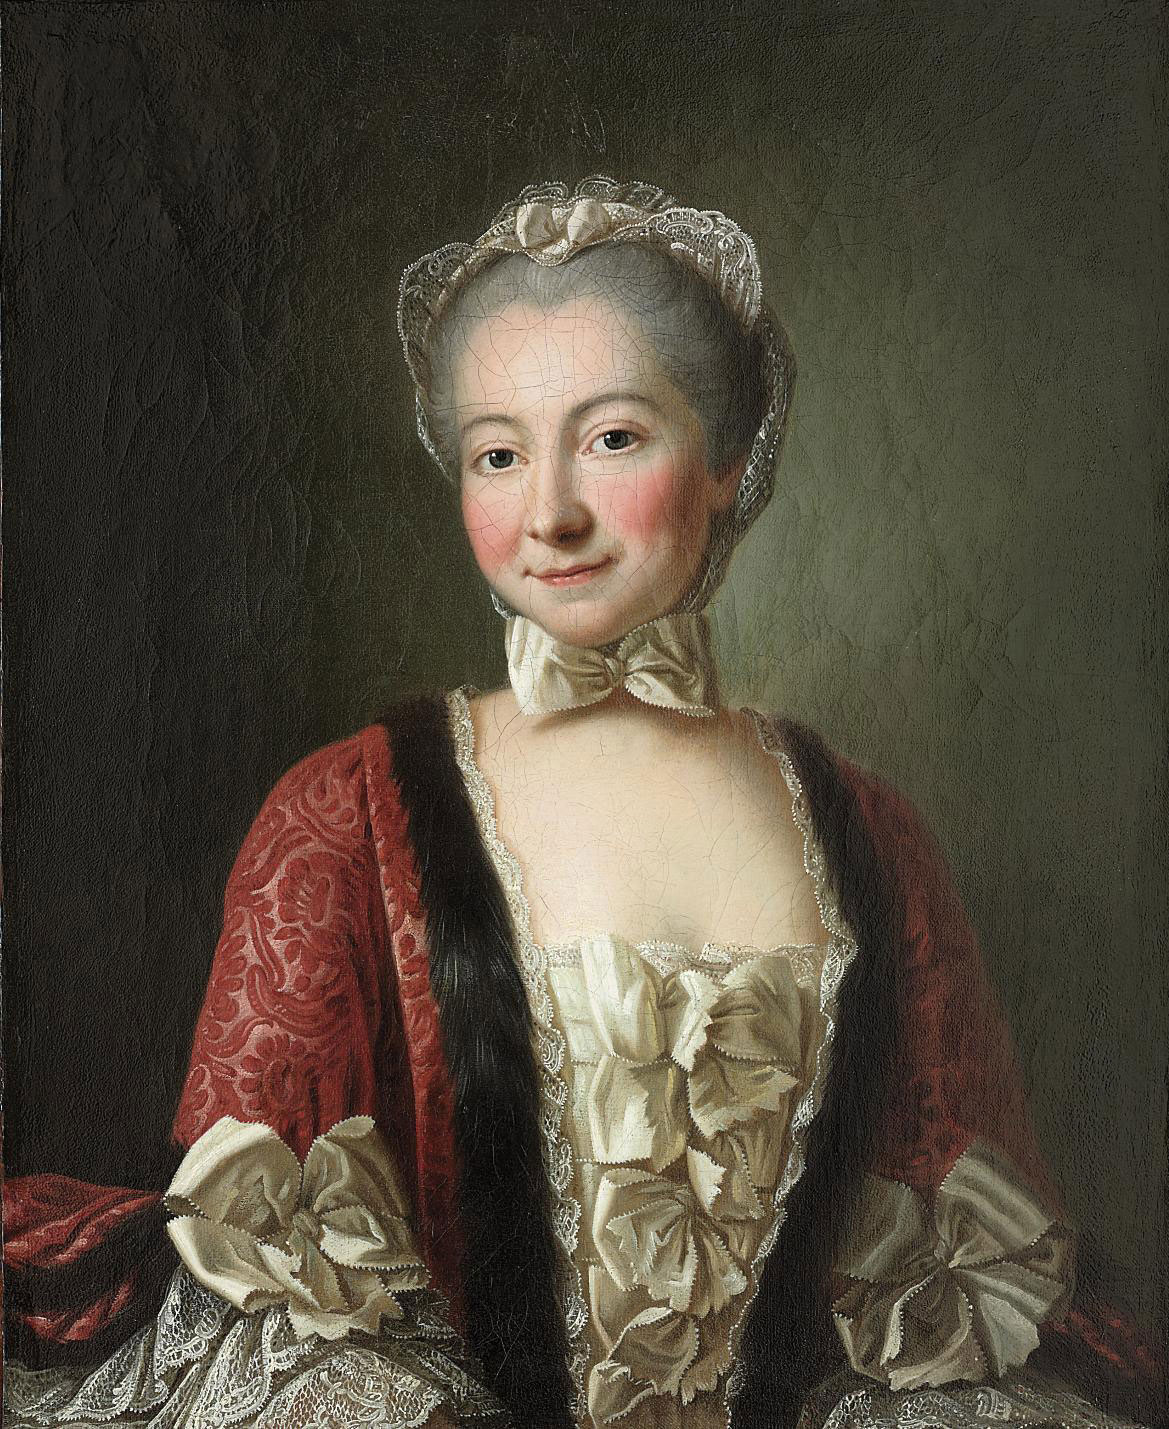 Portrait of a lady, said to be the marquise de Beauharnais, half-length, in a lace gown and fur-lined red coat, with a bonnet